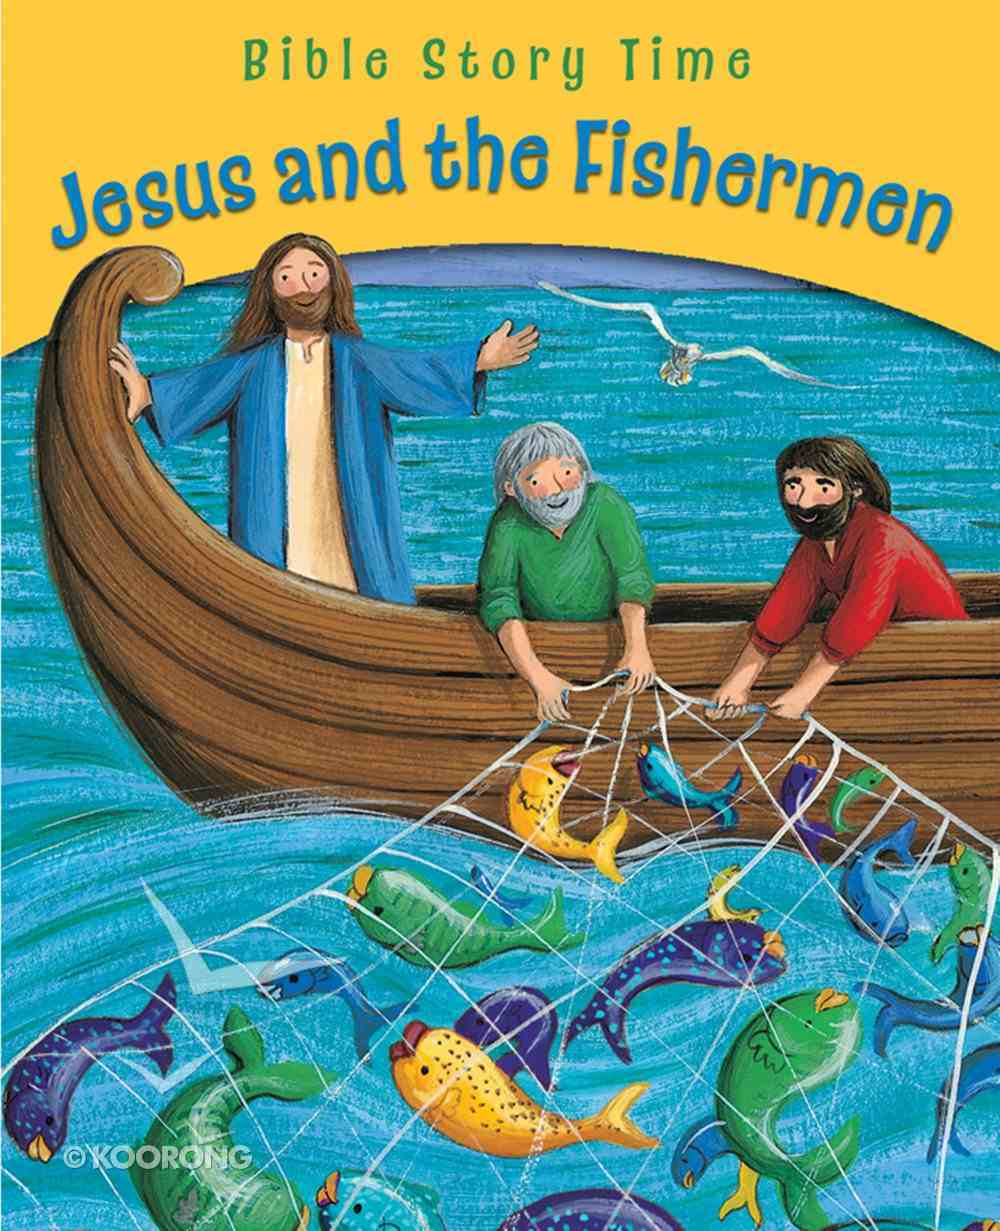 Jesus and the Fishermen (Bible Story Time New Testament Series) eBook